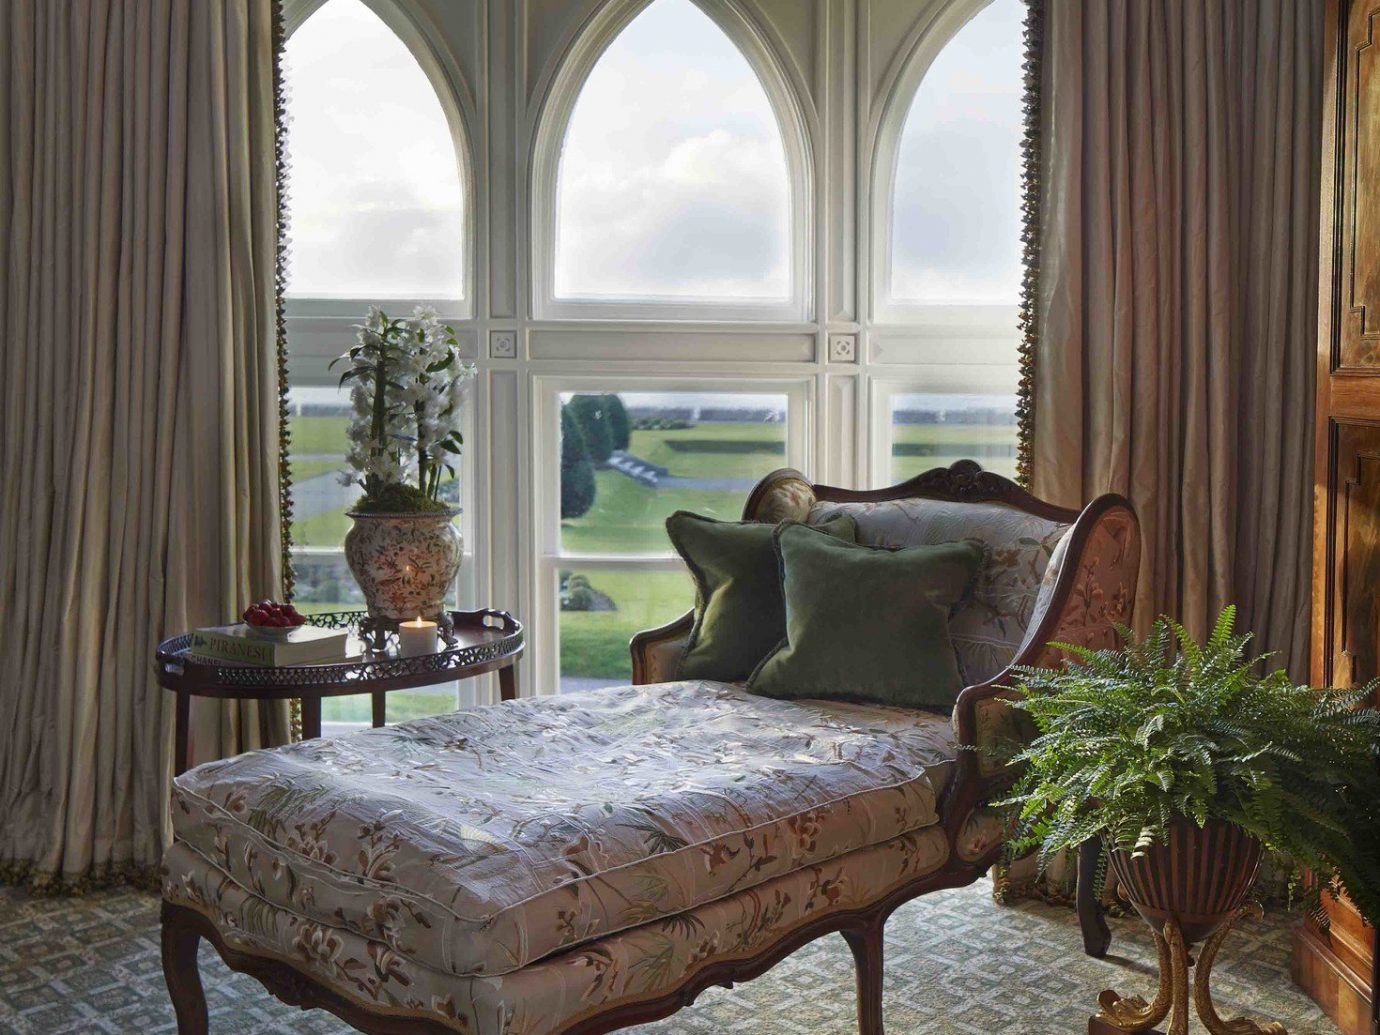 Hotels room property furniture living room estate table interior design home wood floor dining room mansion window porch window covering